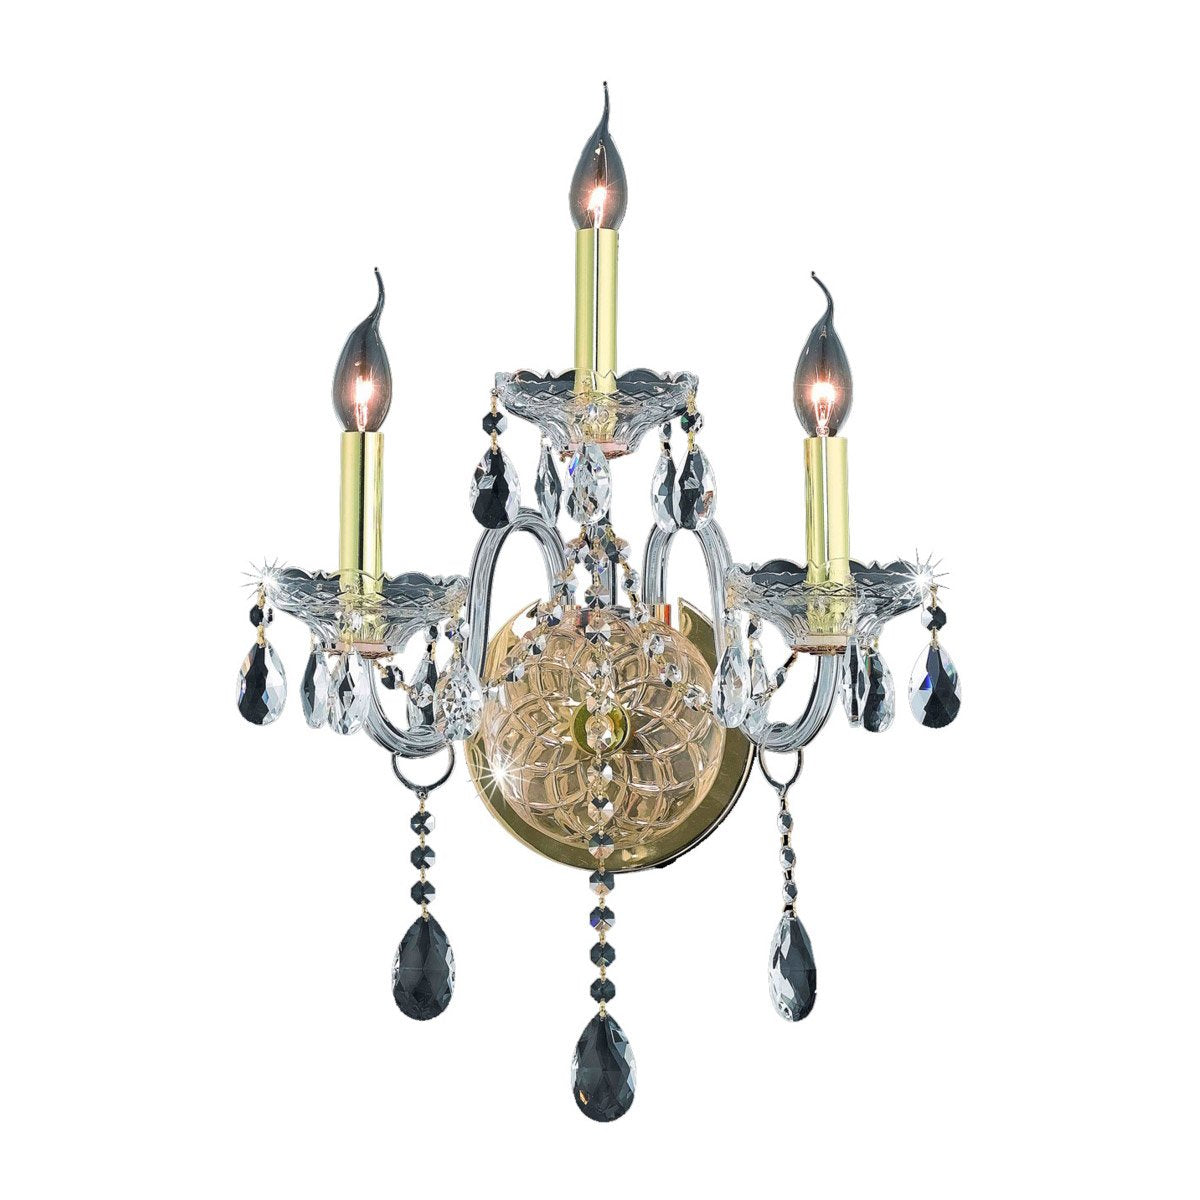 Verona 14 Crystal Wall Sconce With 3 Lights - Gold Finish And Clear / Royal Cut Crystal Wall Sconce